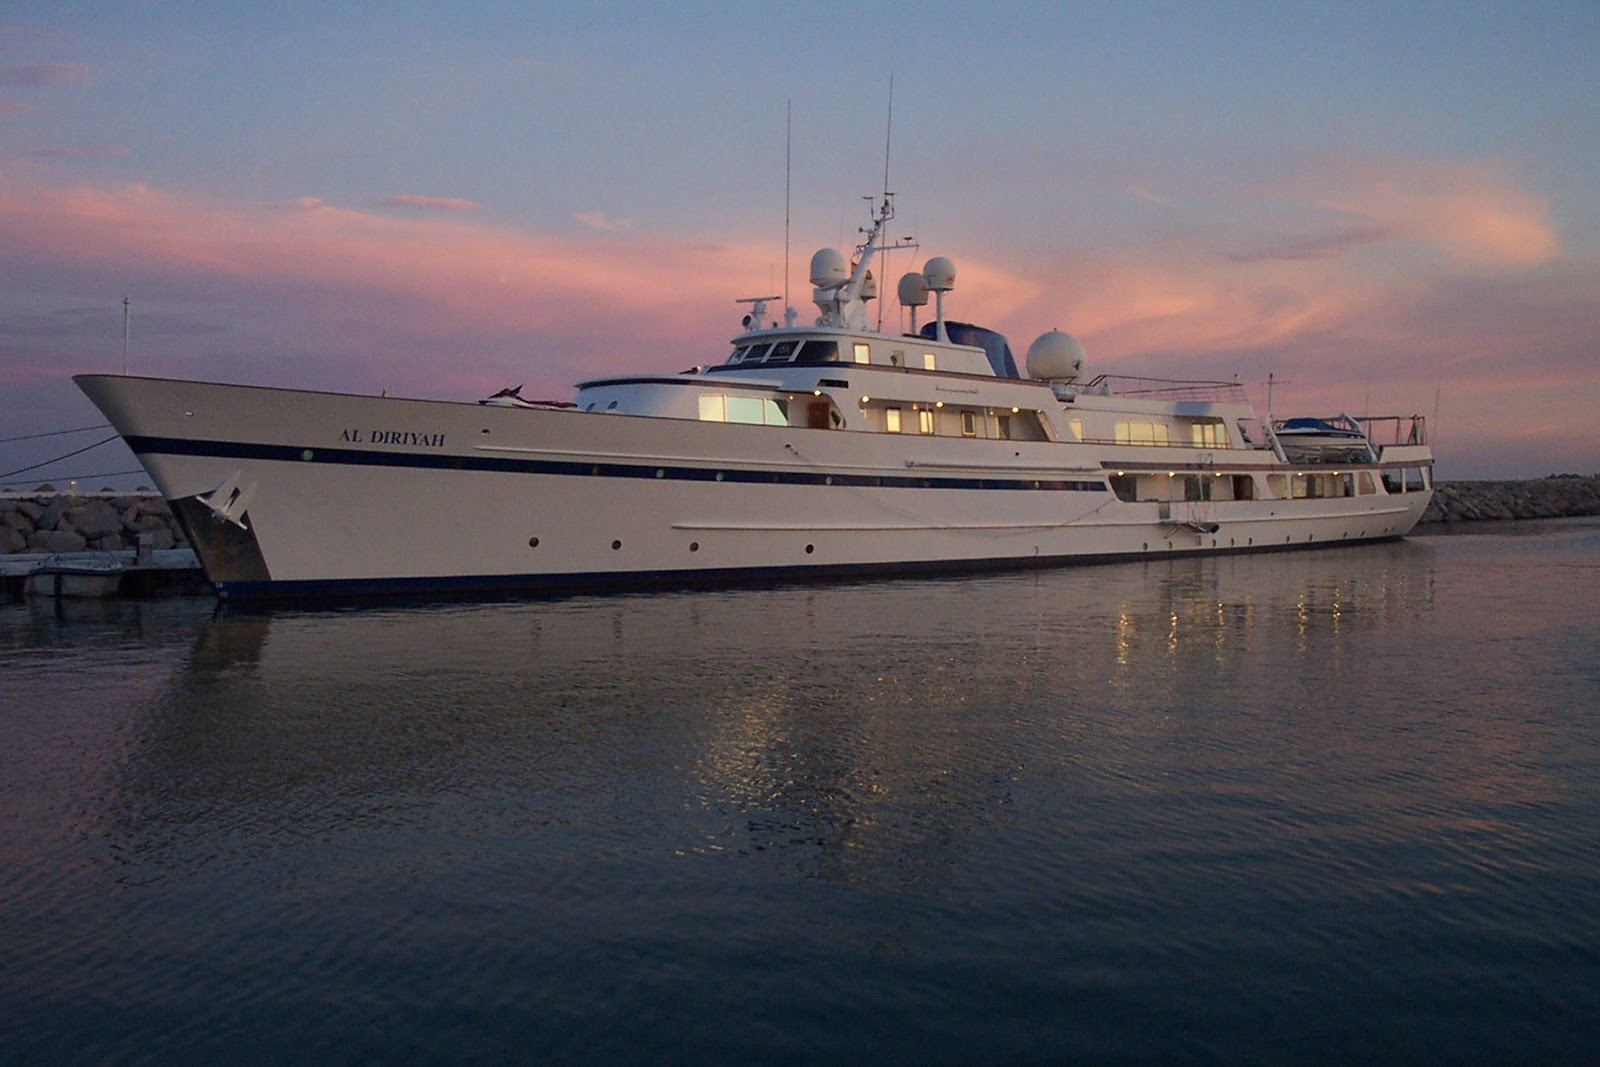 Superyacht AL DIRIYAH at Night